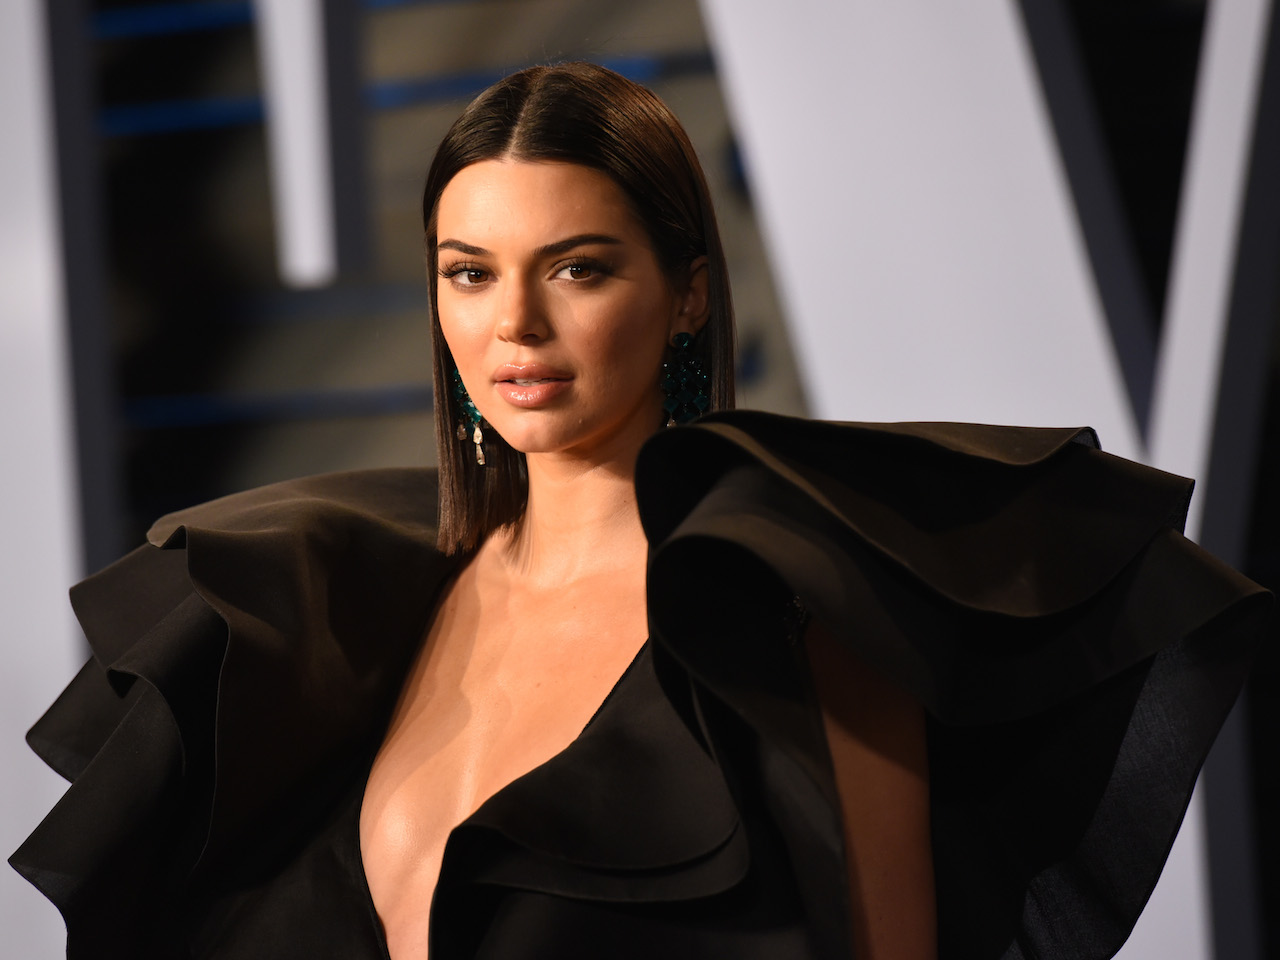 nipple injections-Kendall Jenner